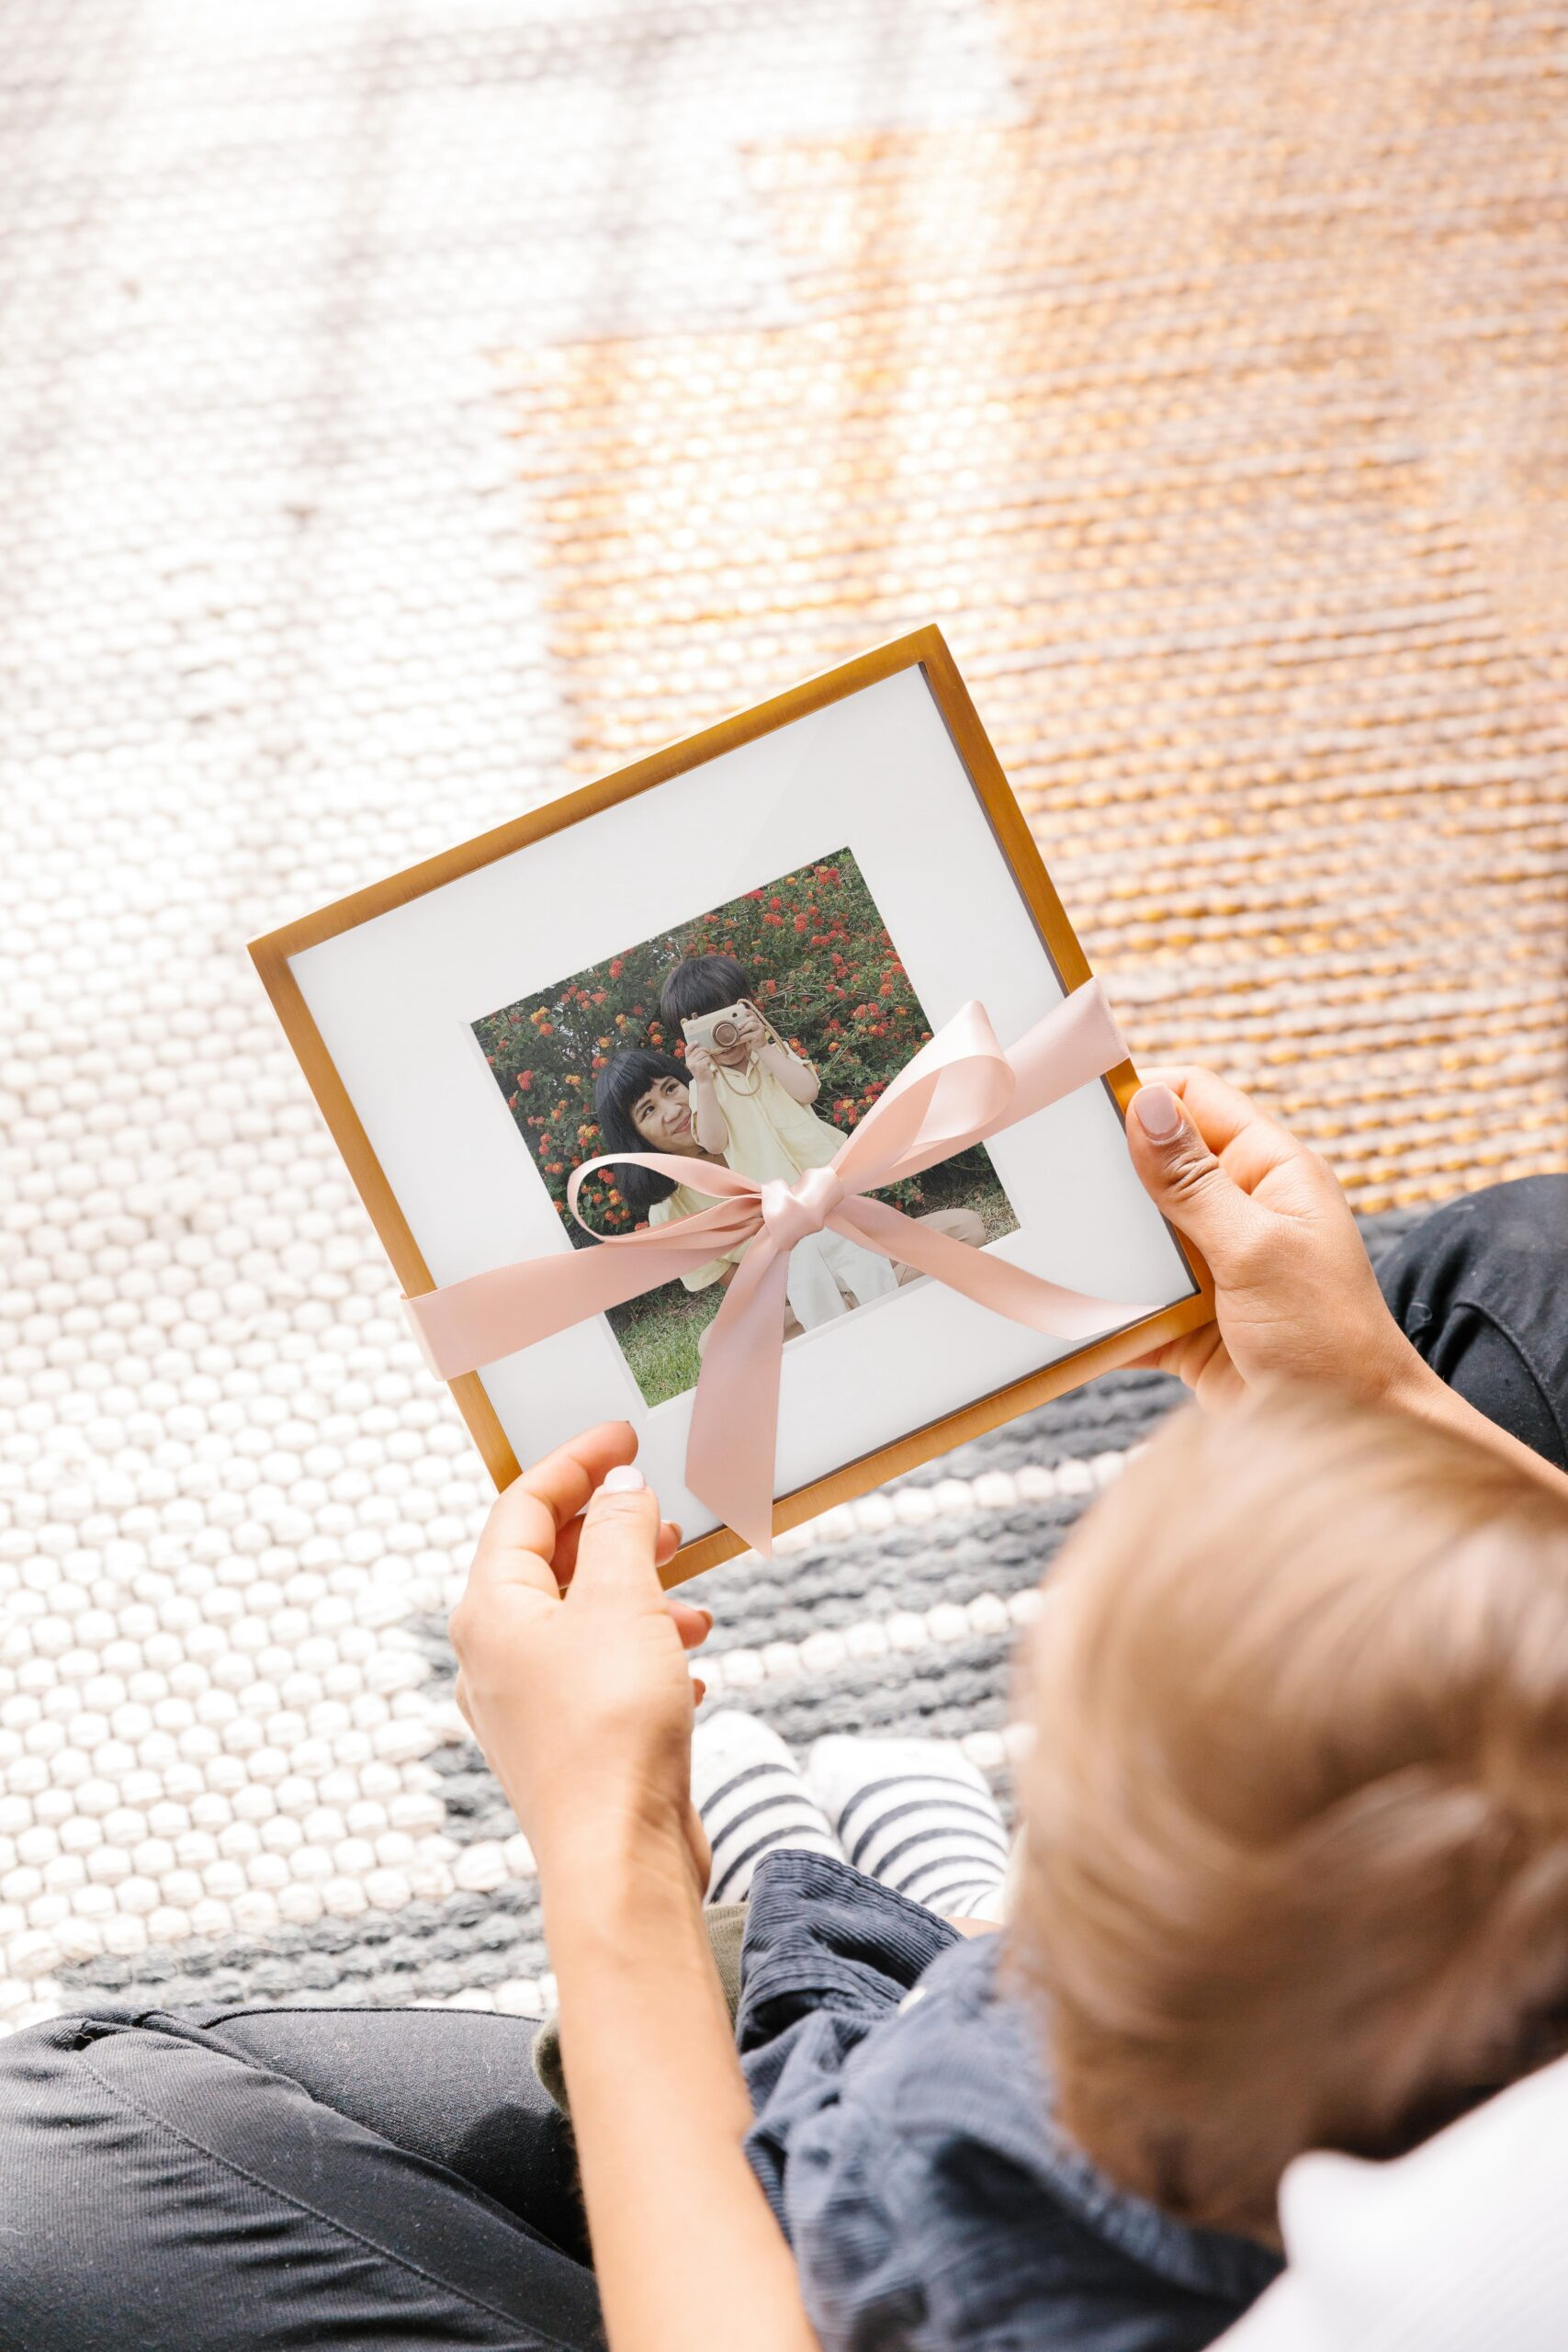 20190322-mothers-day-lifestyle-brass-tabletop-with-kid-gifting-56